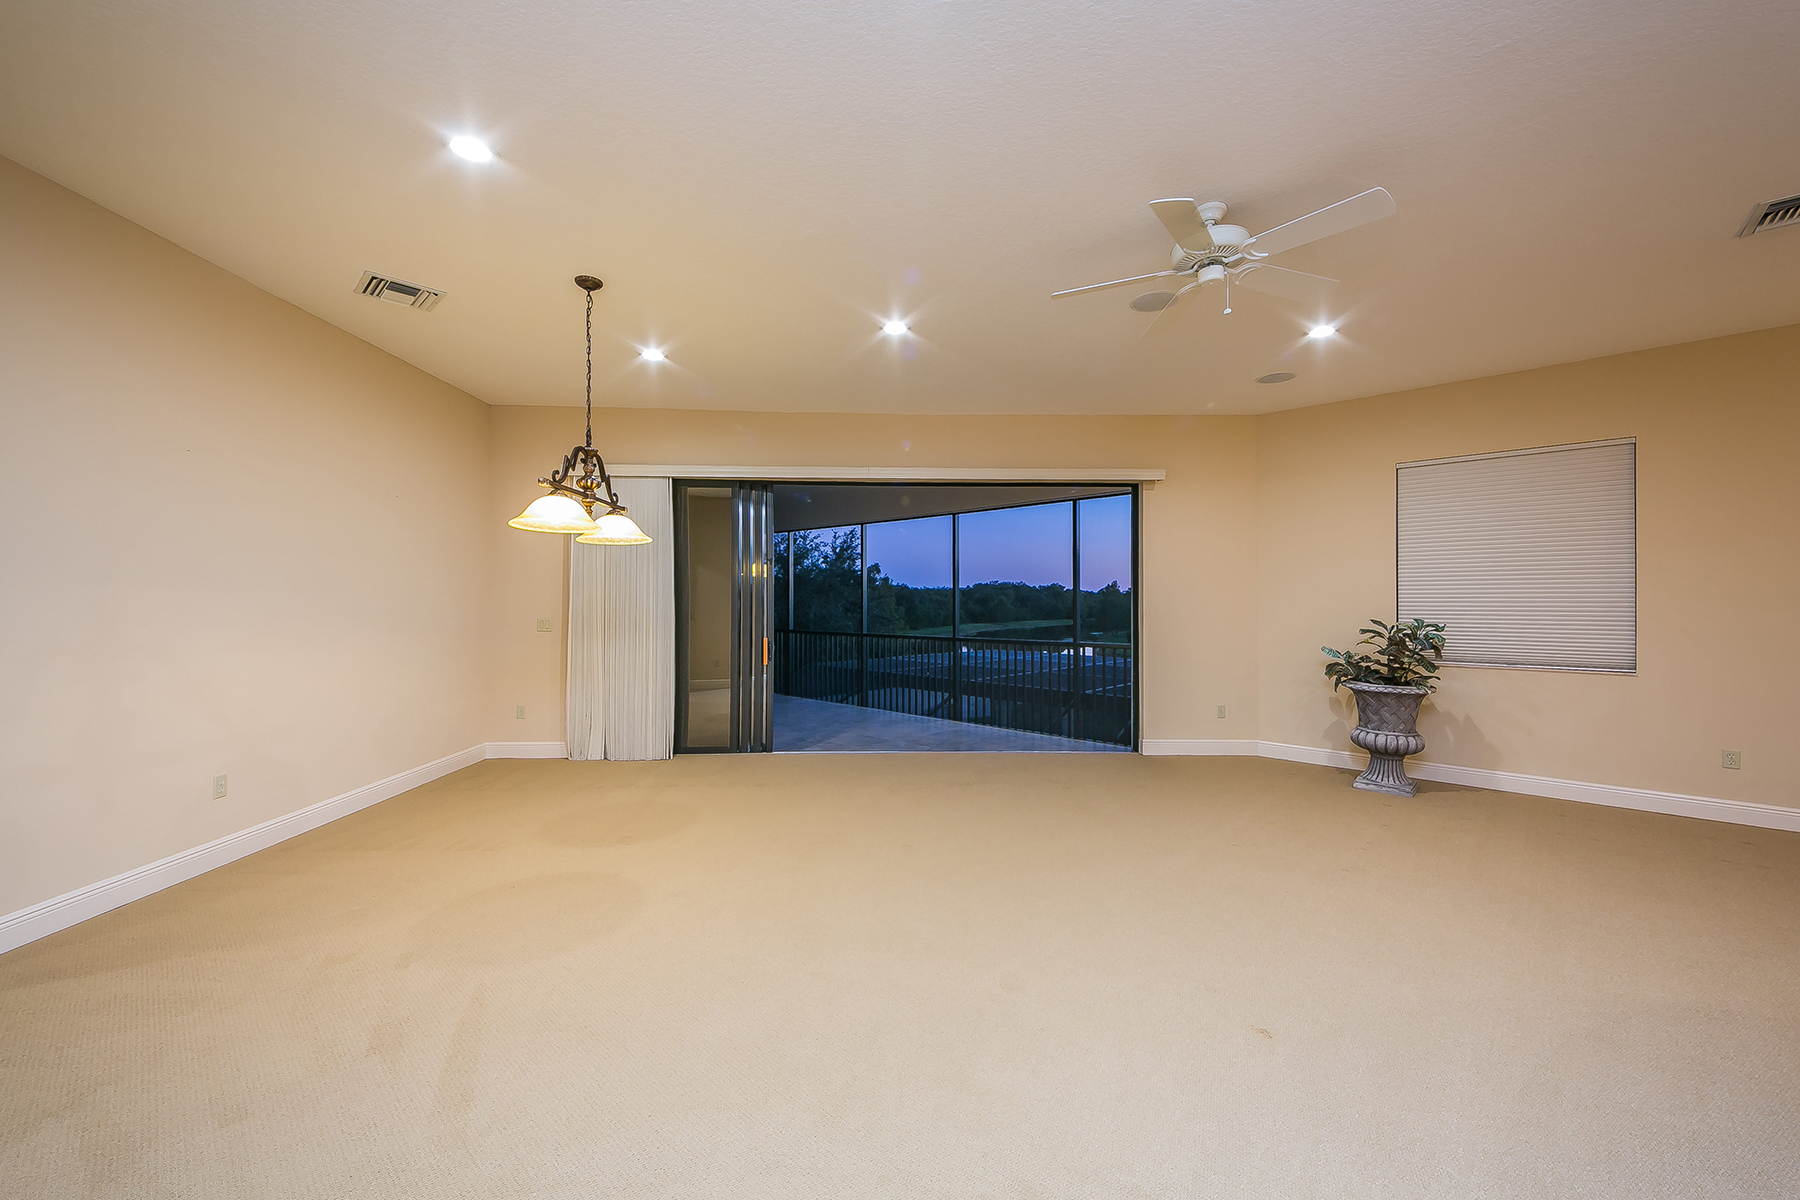 Additional photo for property listing at LAKEWOOD RANCH 6809  Belmont Ct,  Lakewood Ranch, Florida 34202 United States